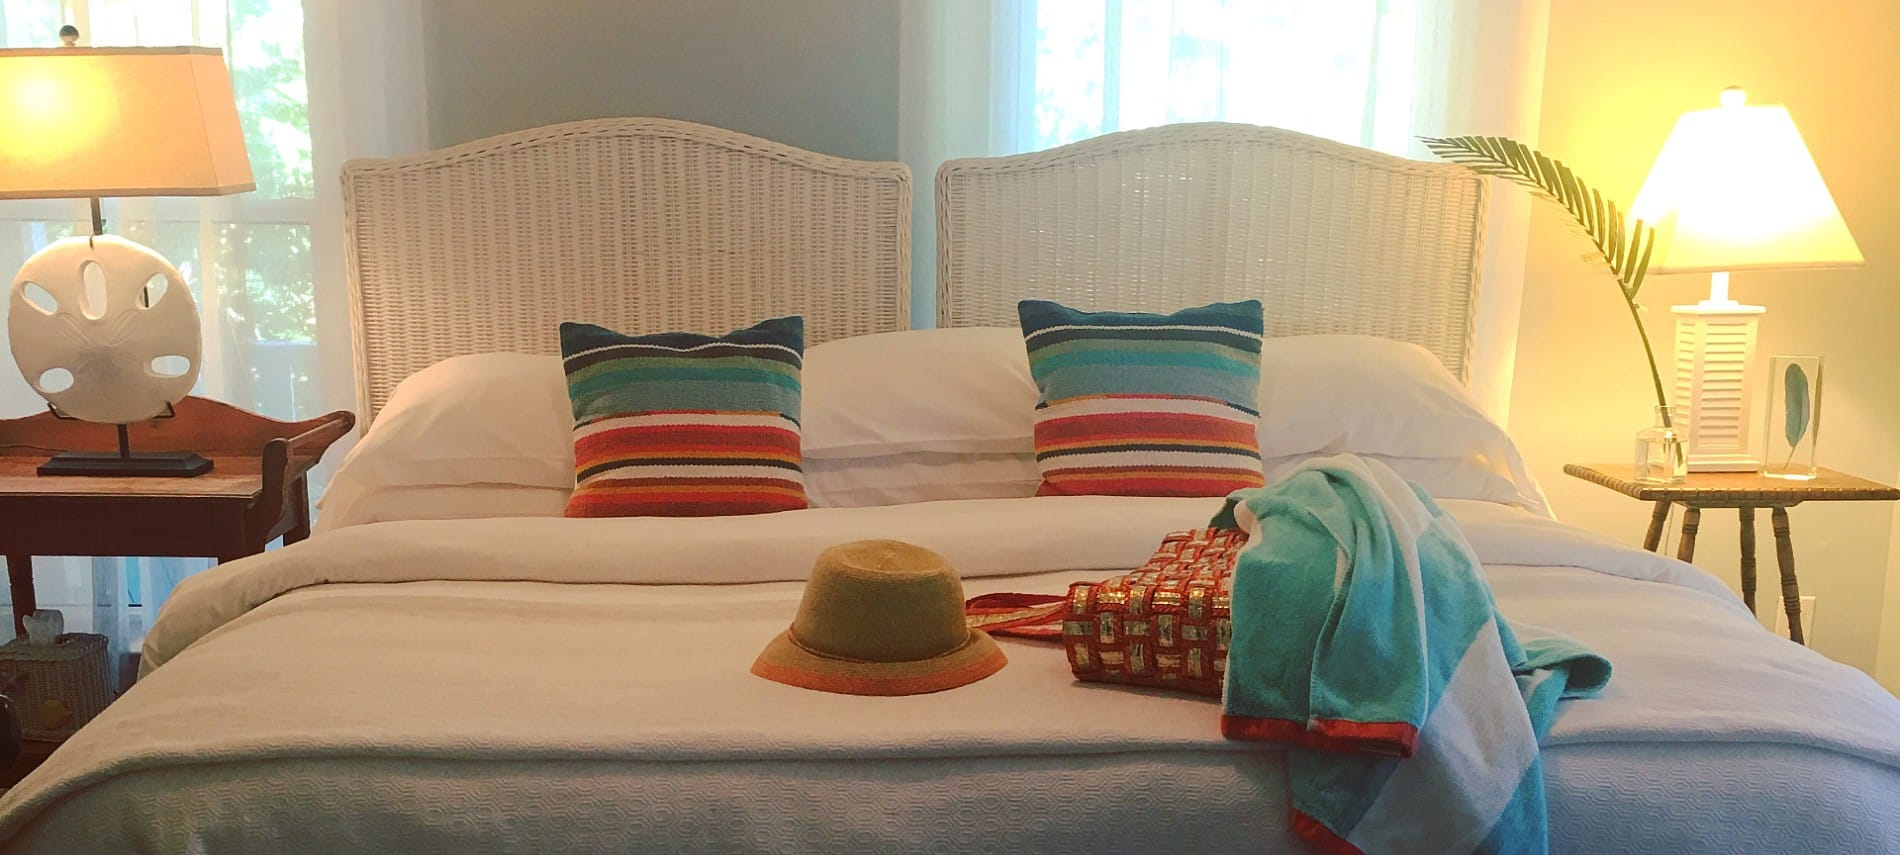 A large bed with two wicker headboards made up in white with colorful pillows and two nightstands with lamps.